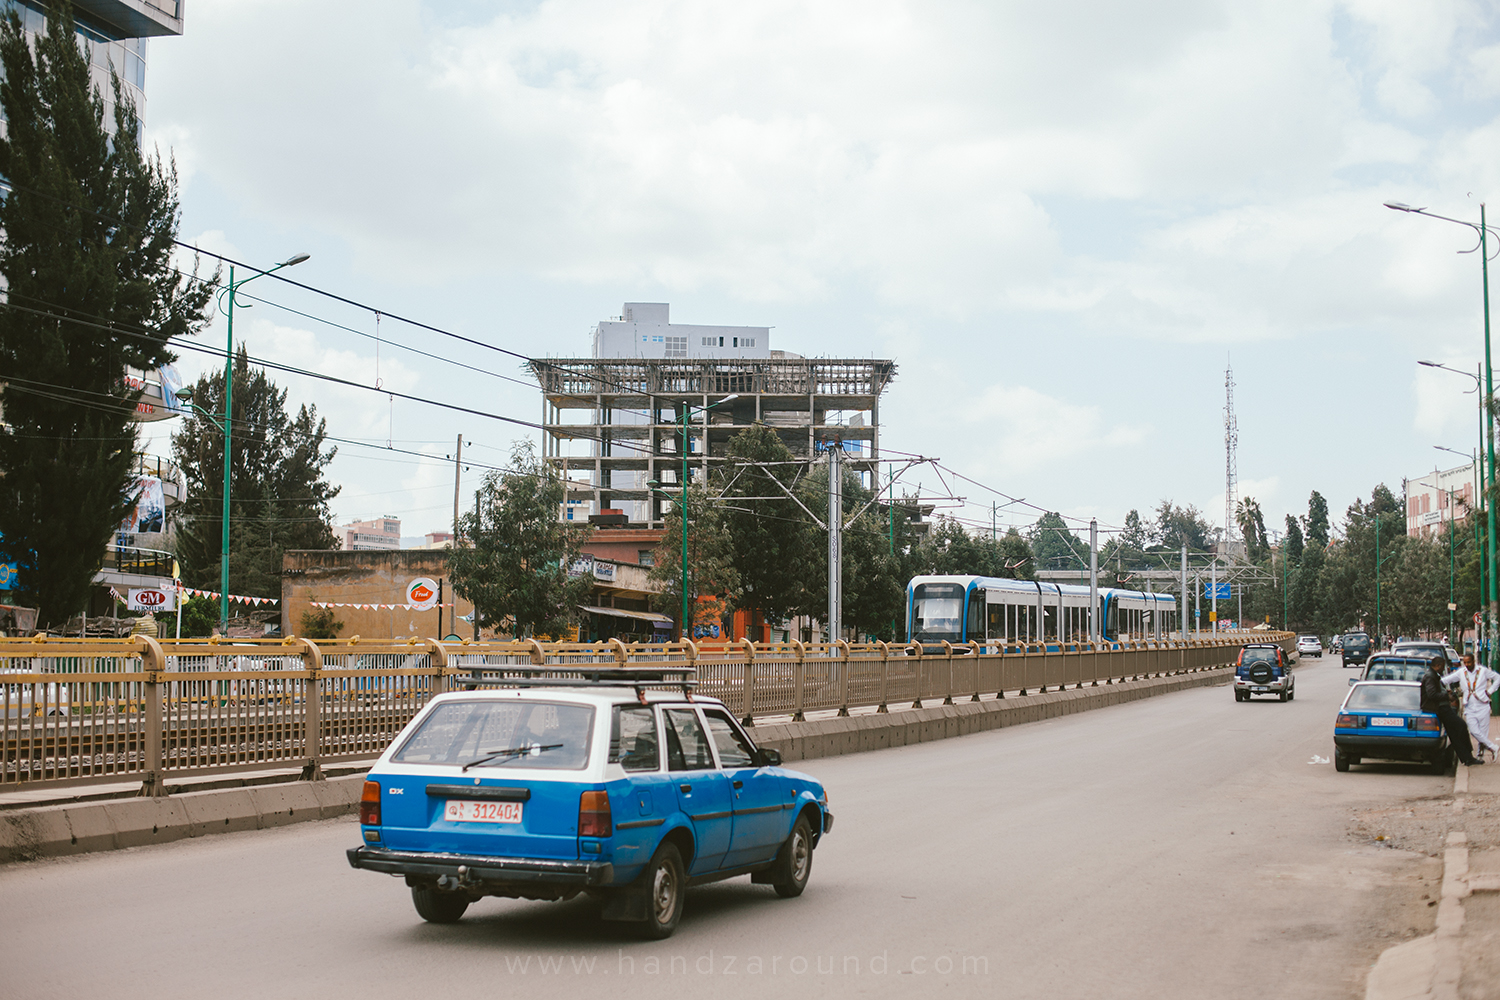 Electric train and taxis in the centre of Addis Ababa